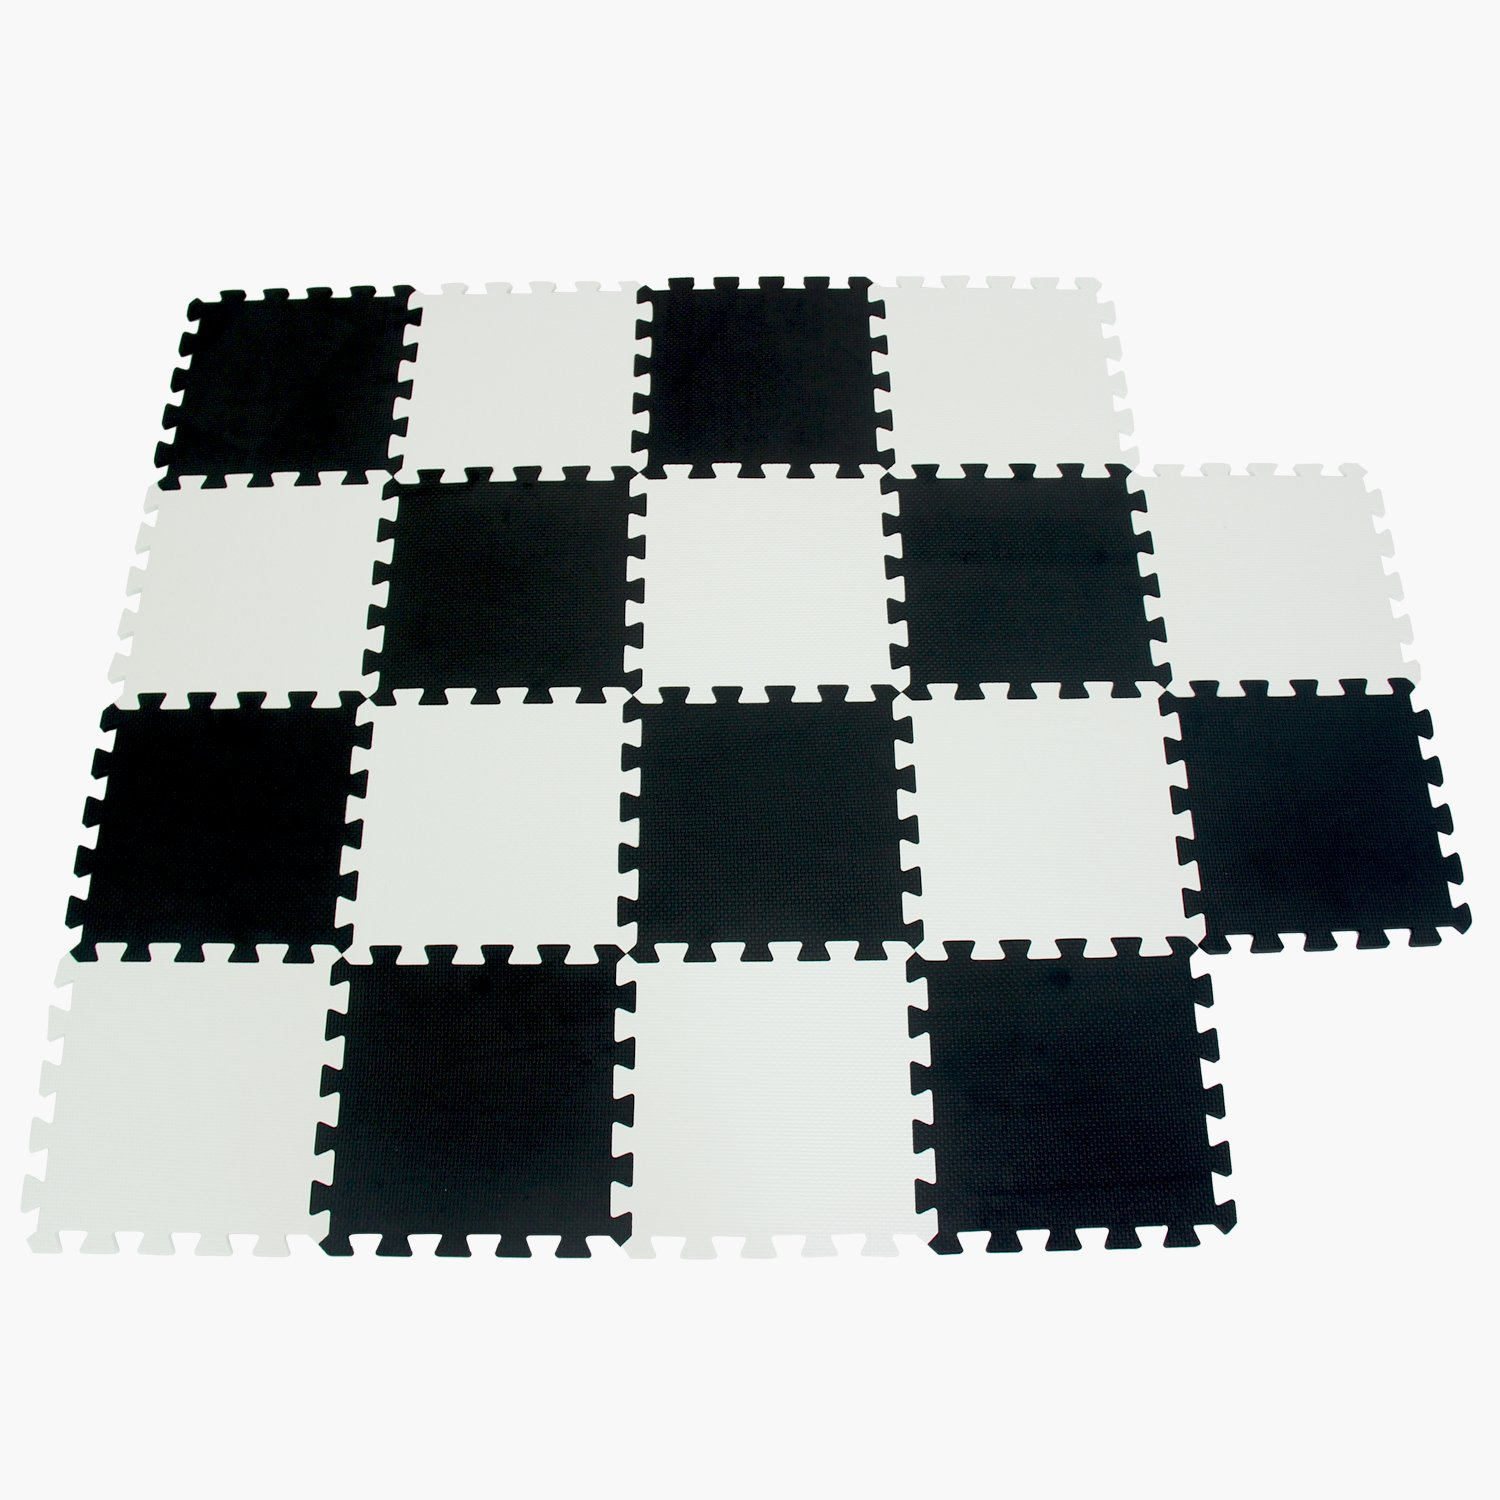 Meiqicool Baby Crawling Mat Puzzle Play Foam Tiles Non Toxic Playmat Floor Mats for Tummy Time, 3510HONG Jiasheng